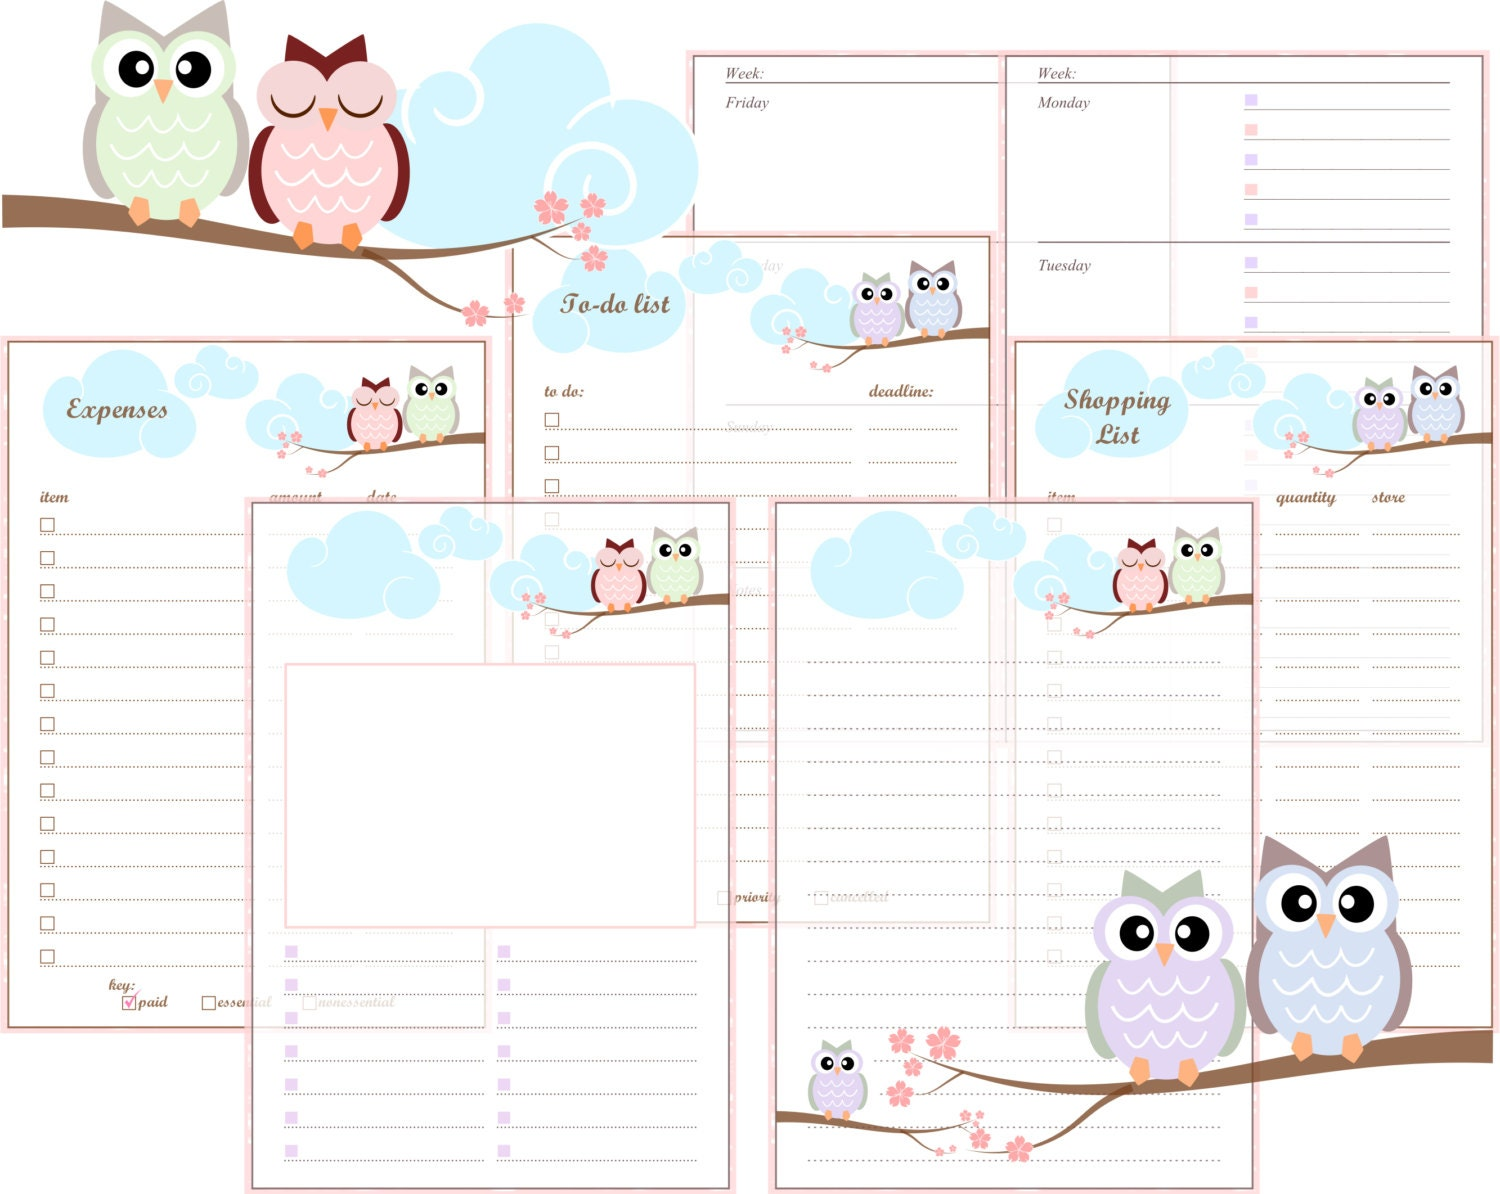 Handy image intended for free a5 planner printables